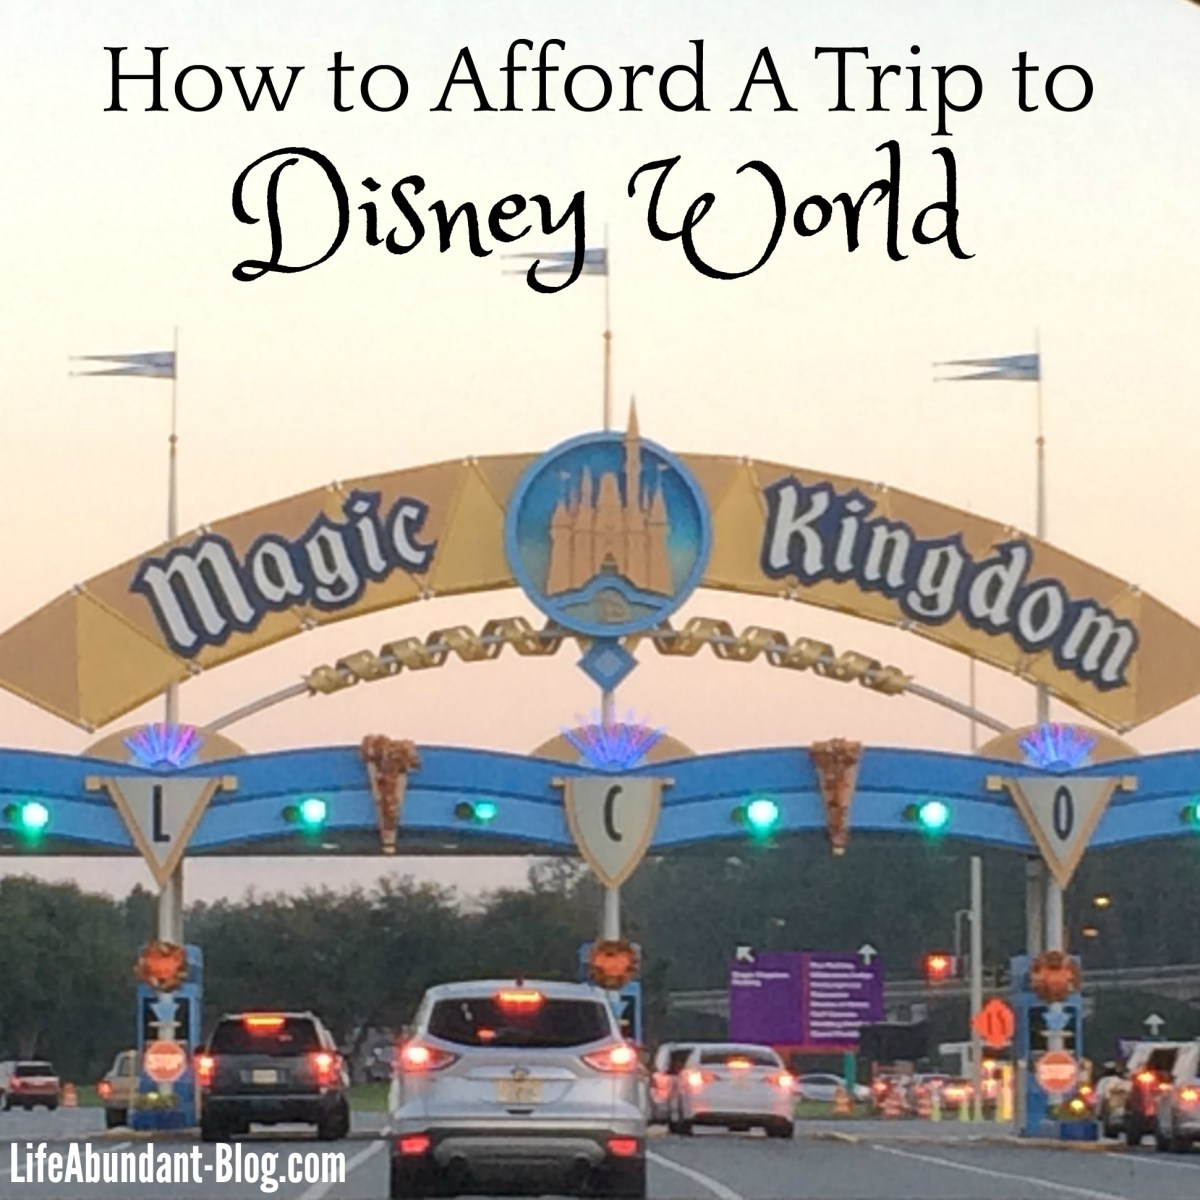 How to Afford A Trip to Disney World